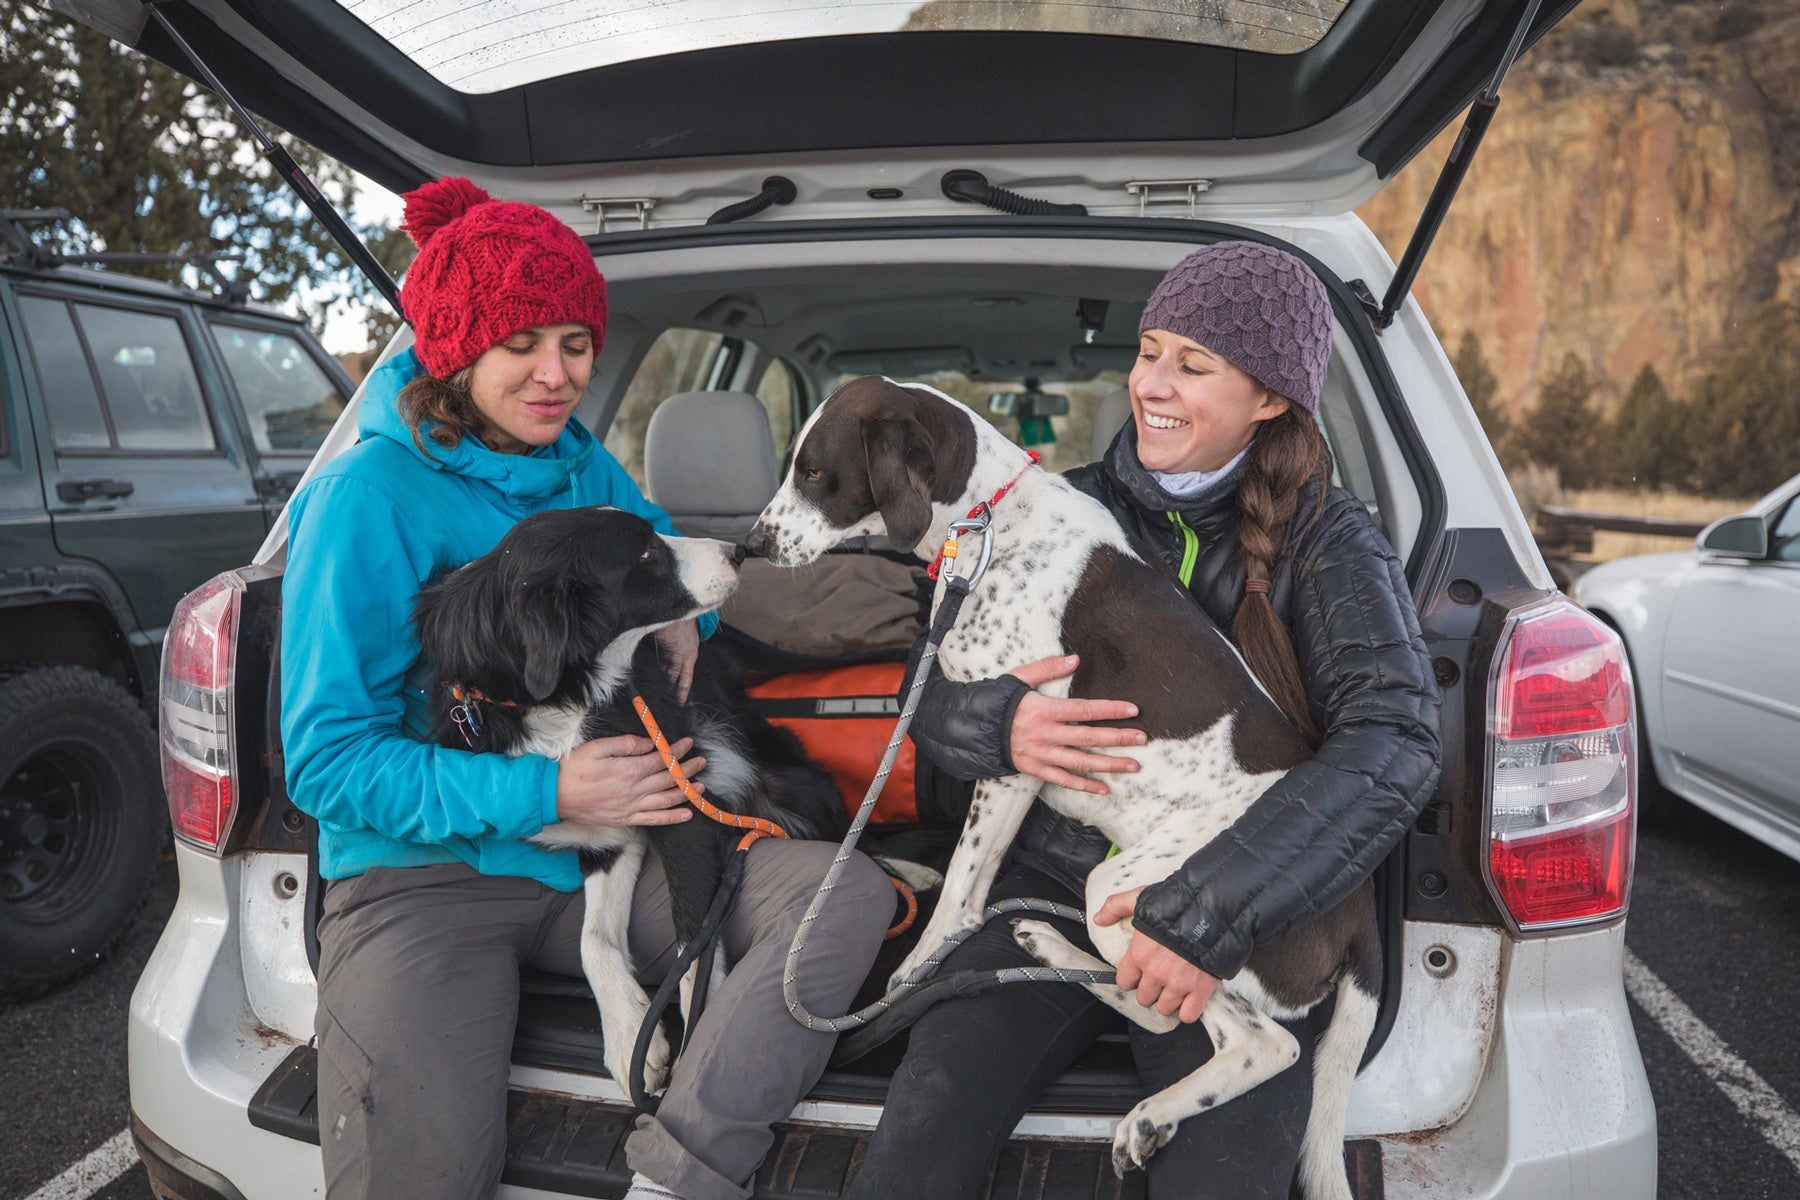 Two climbers with dogs in laps on knot-a-leashes sit in back of car celebrating the day.